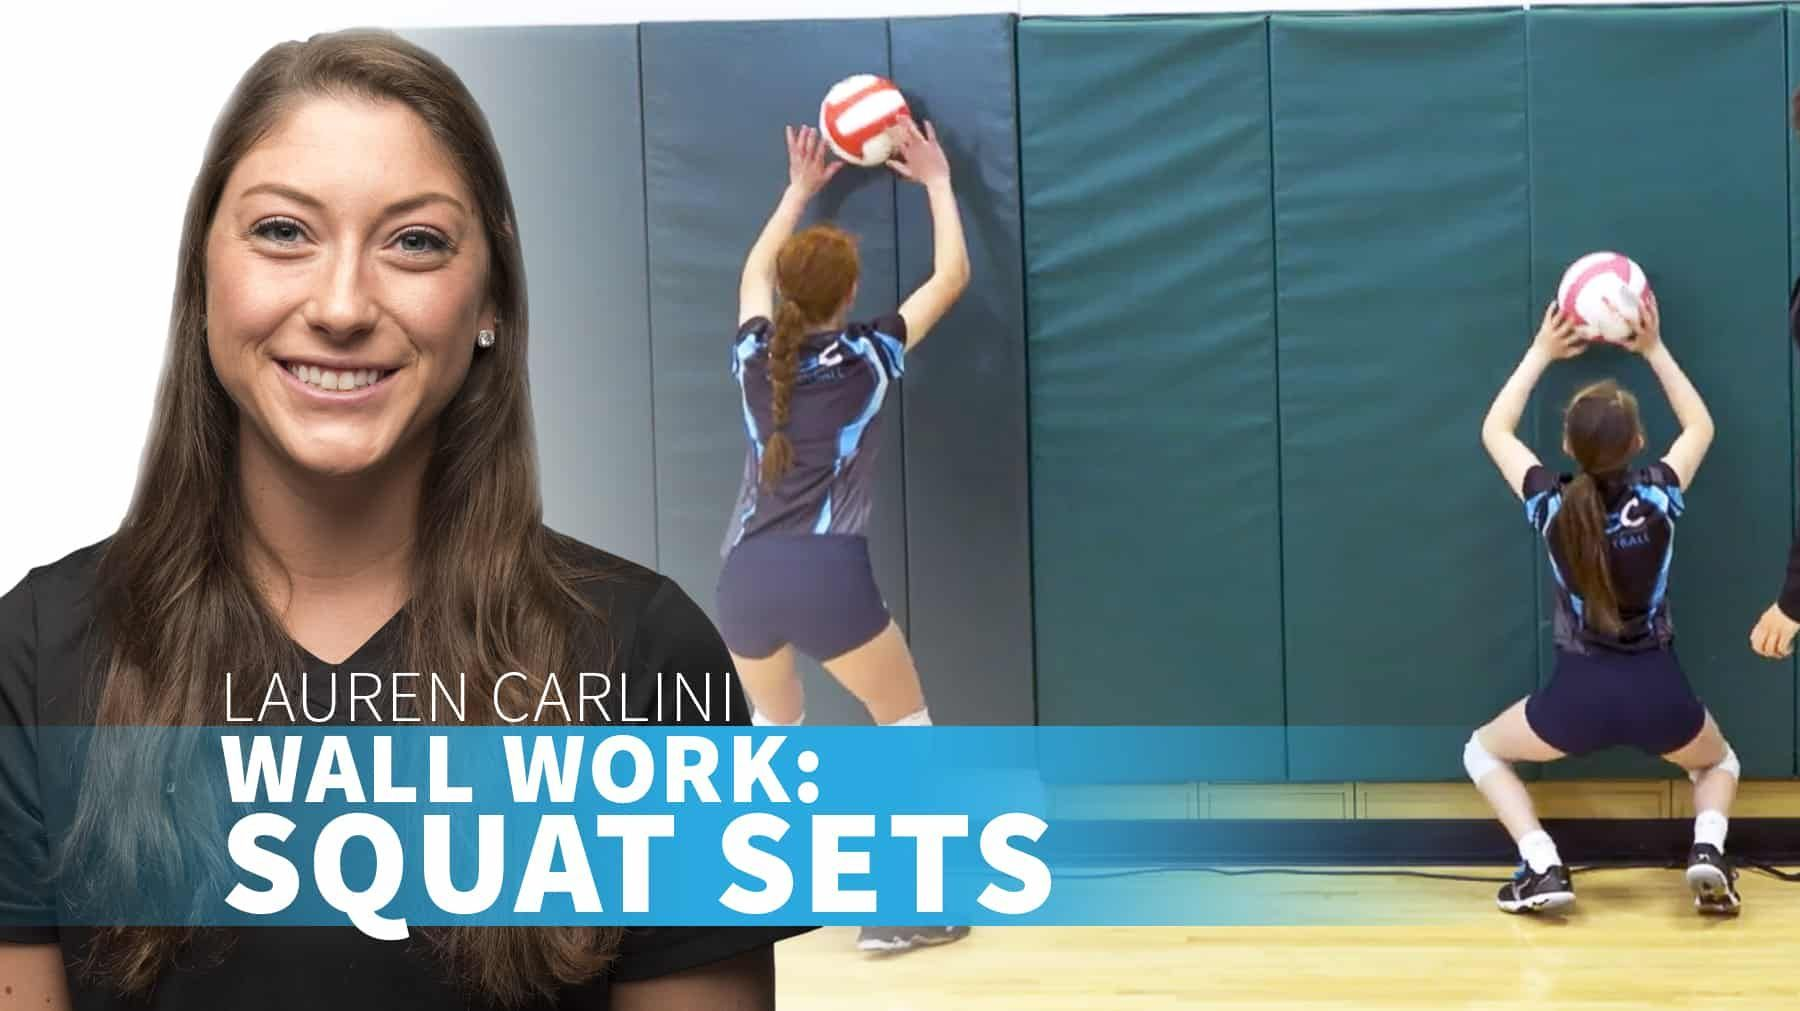 Wall Work Squat Sets Coaching Volleyball Volleyball Drills For Beginners Volleyball Training